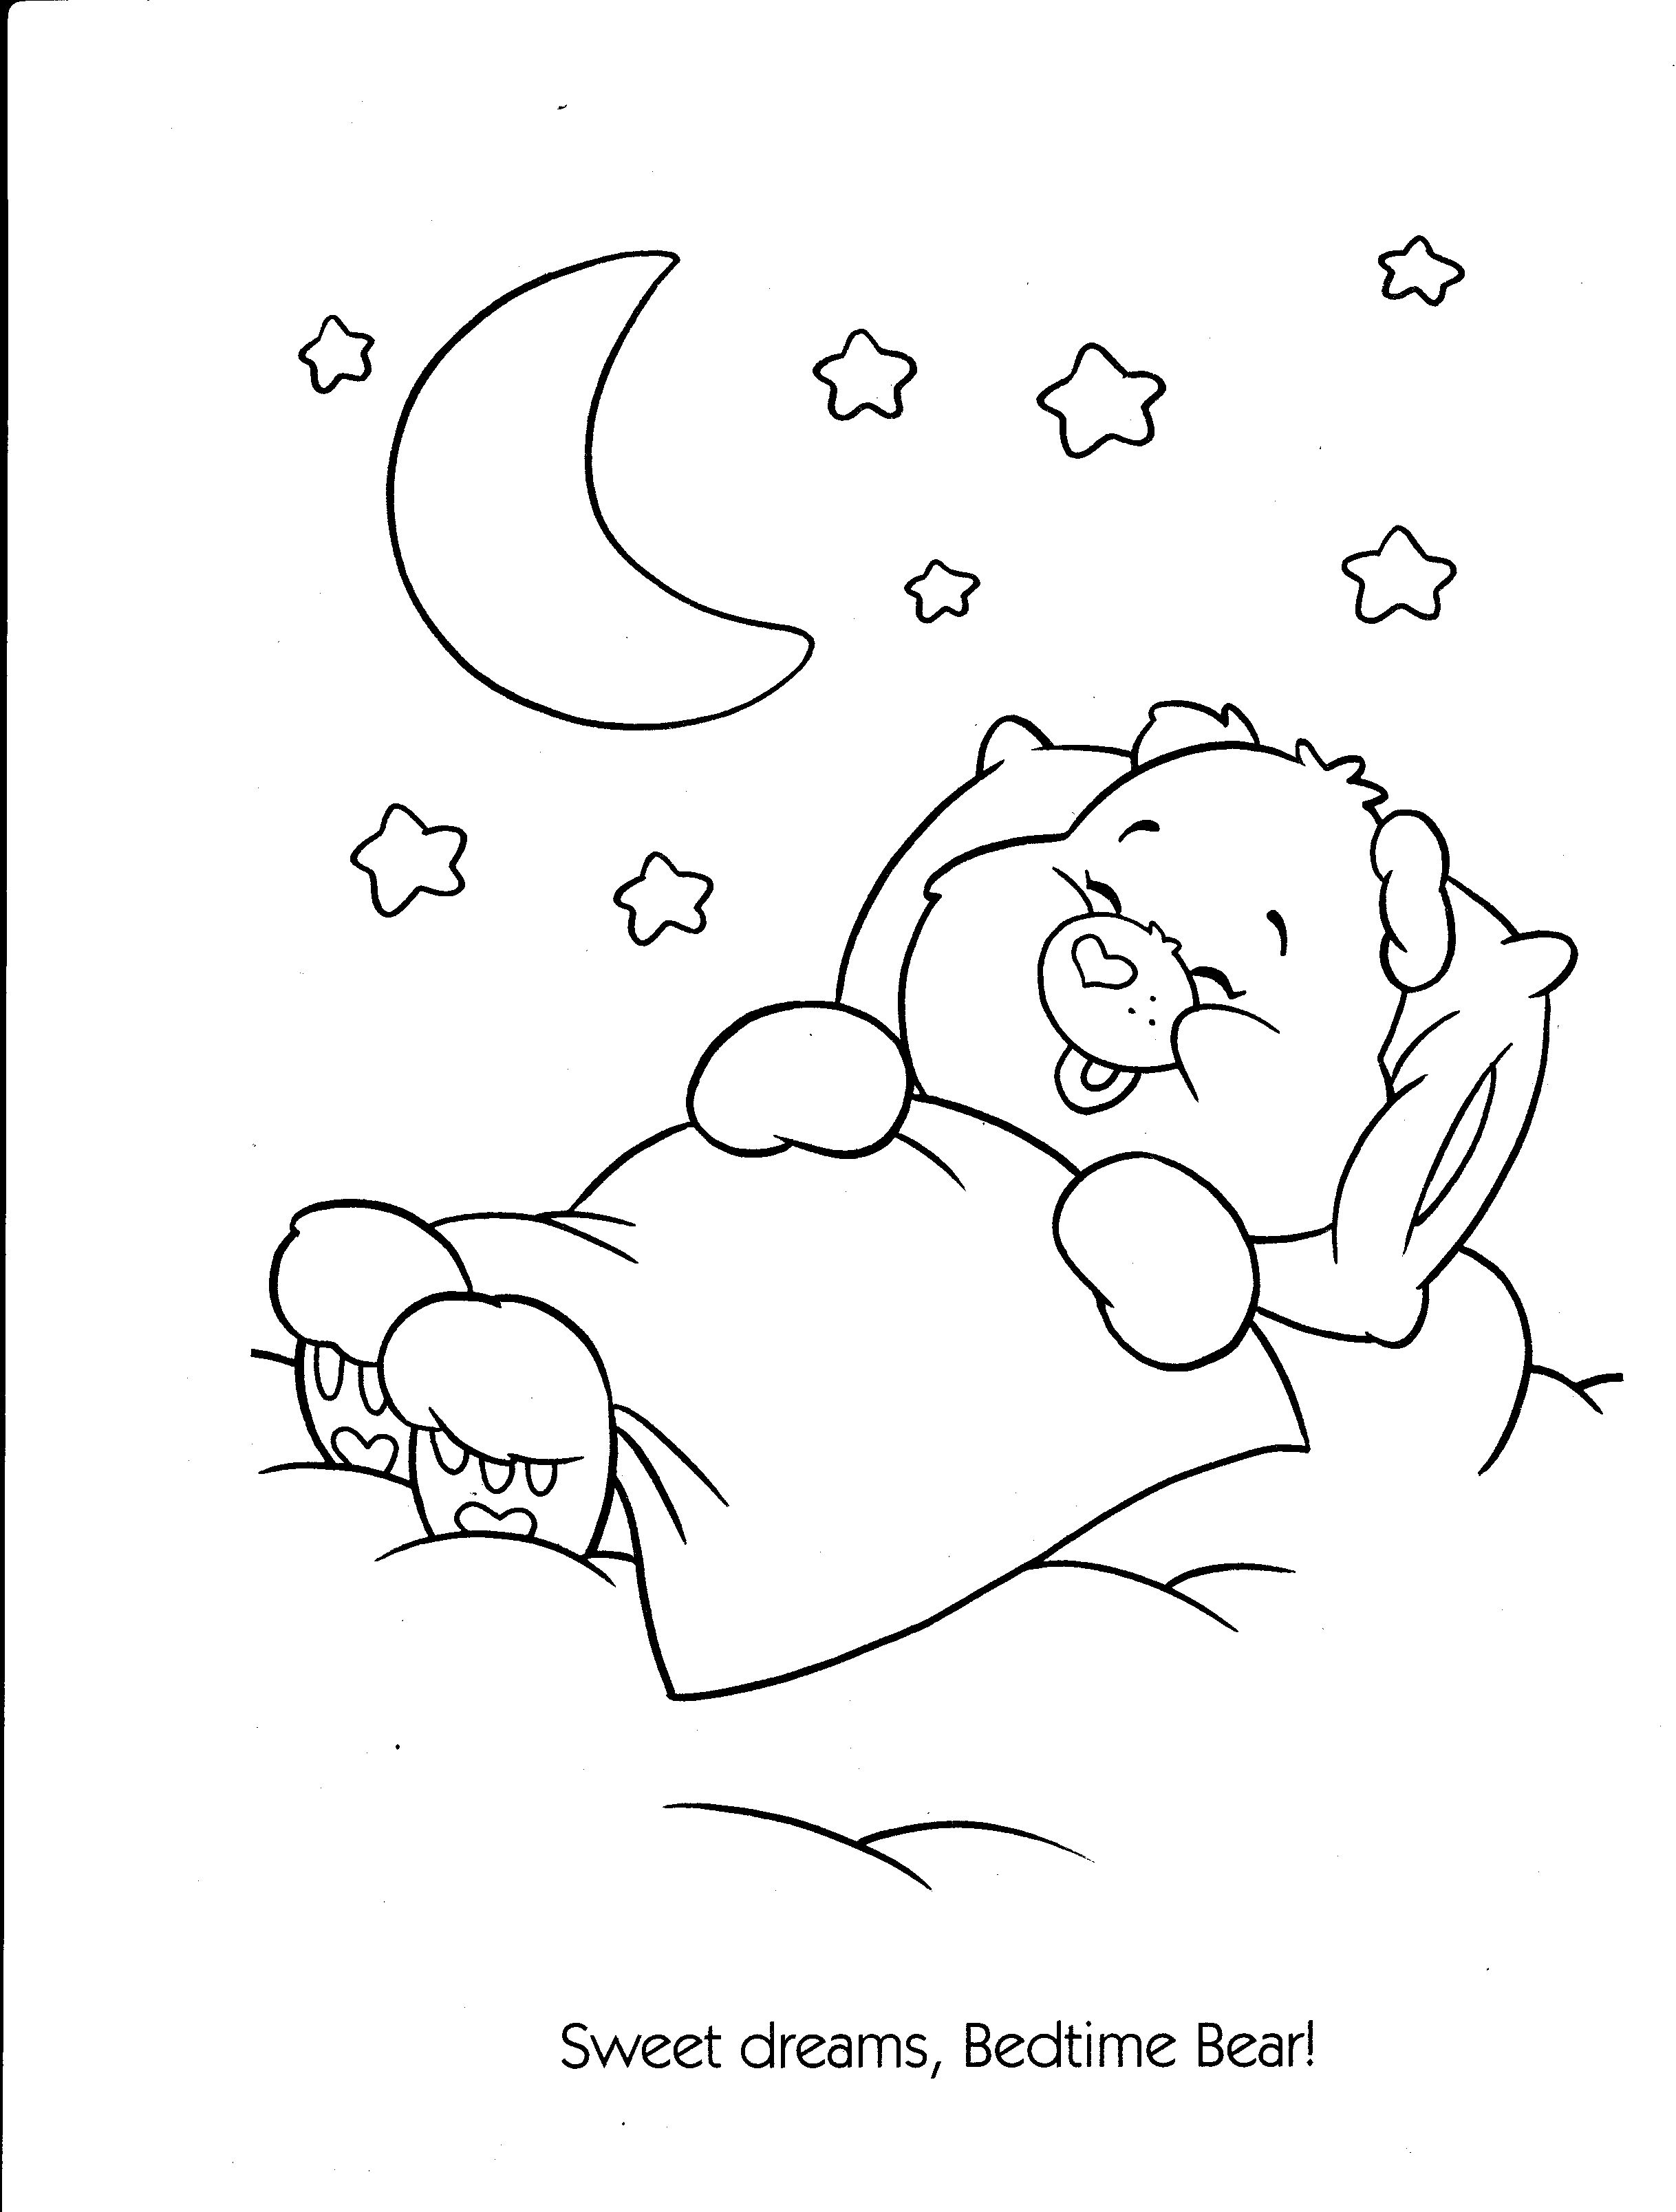 Adult Coloring Pages Sheets Books Printable Care Bears Easy Christmas Crafts Easter Bear Gallery Baby Teddy